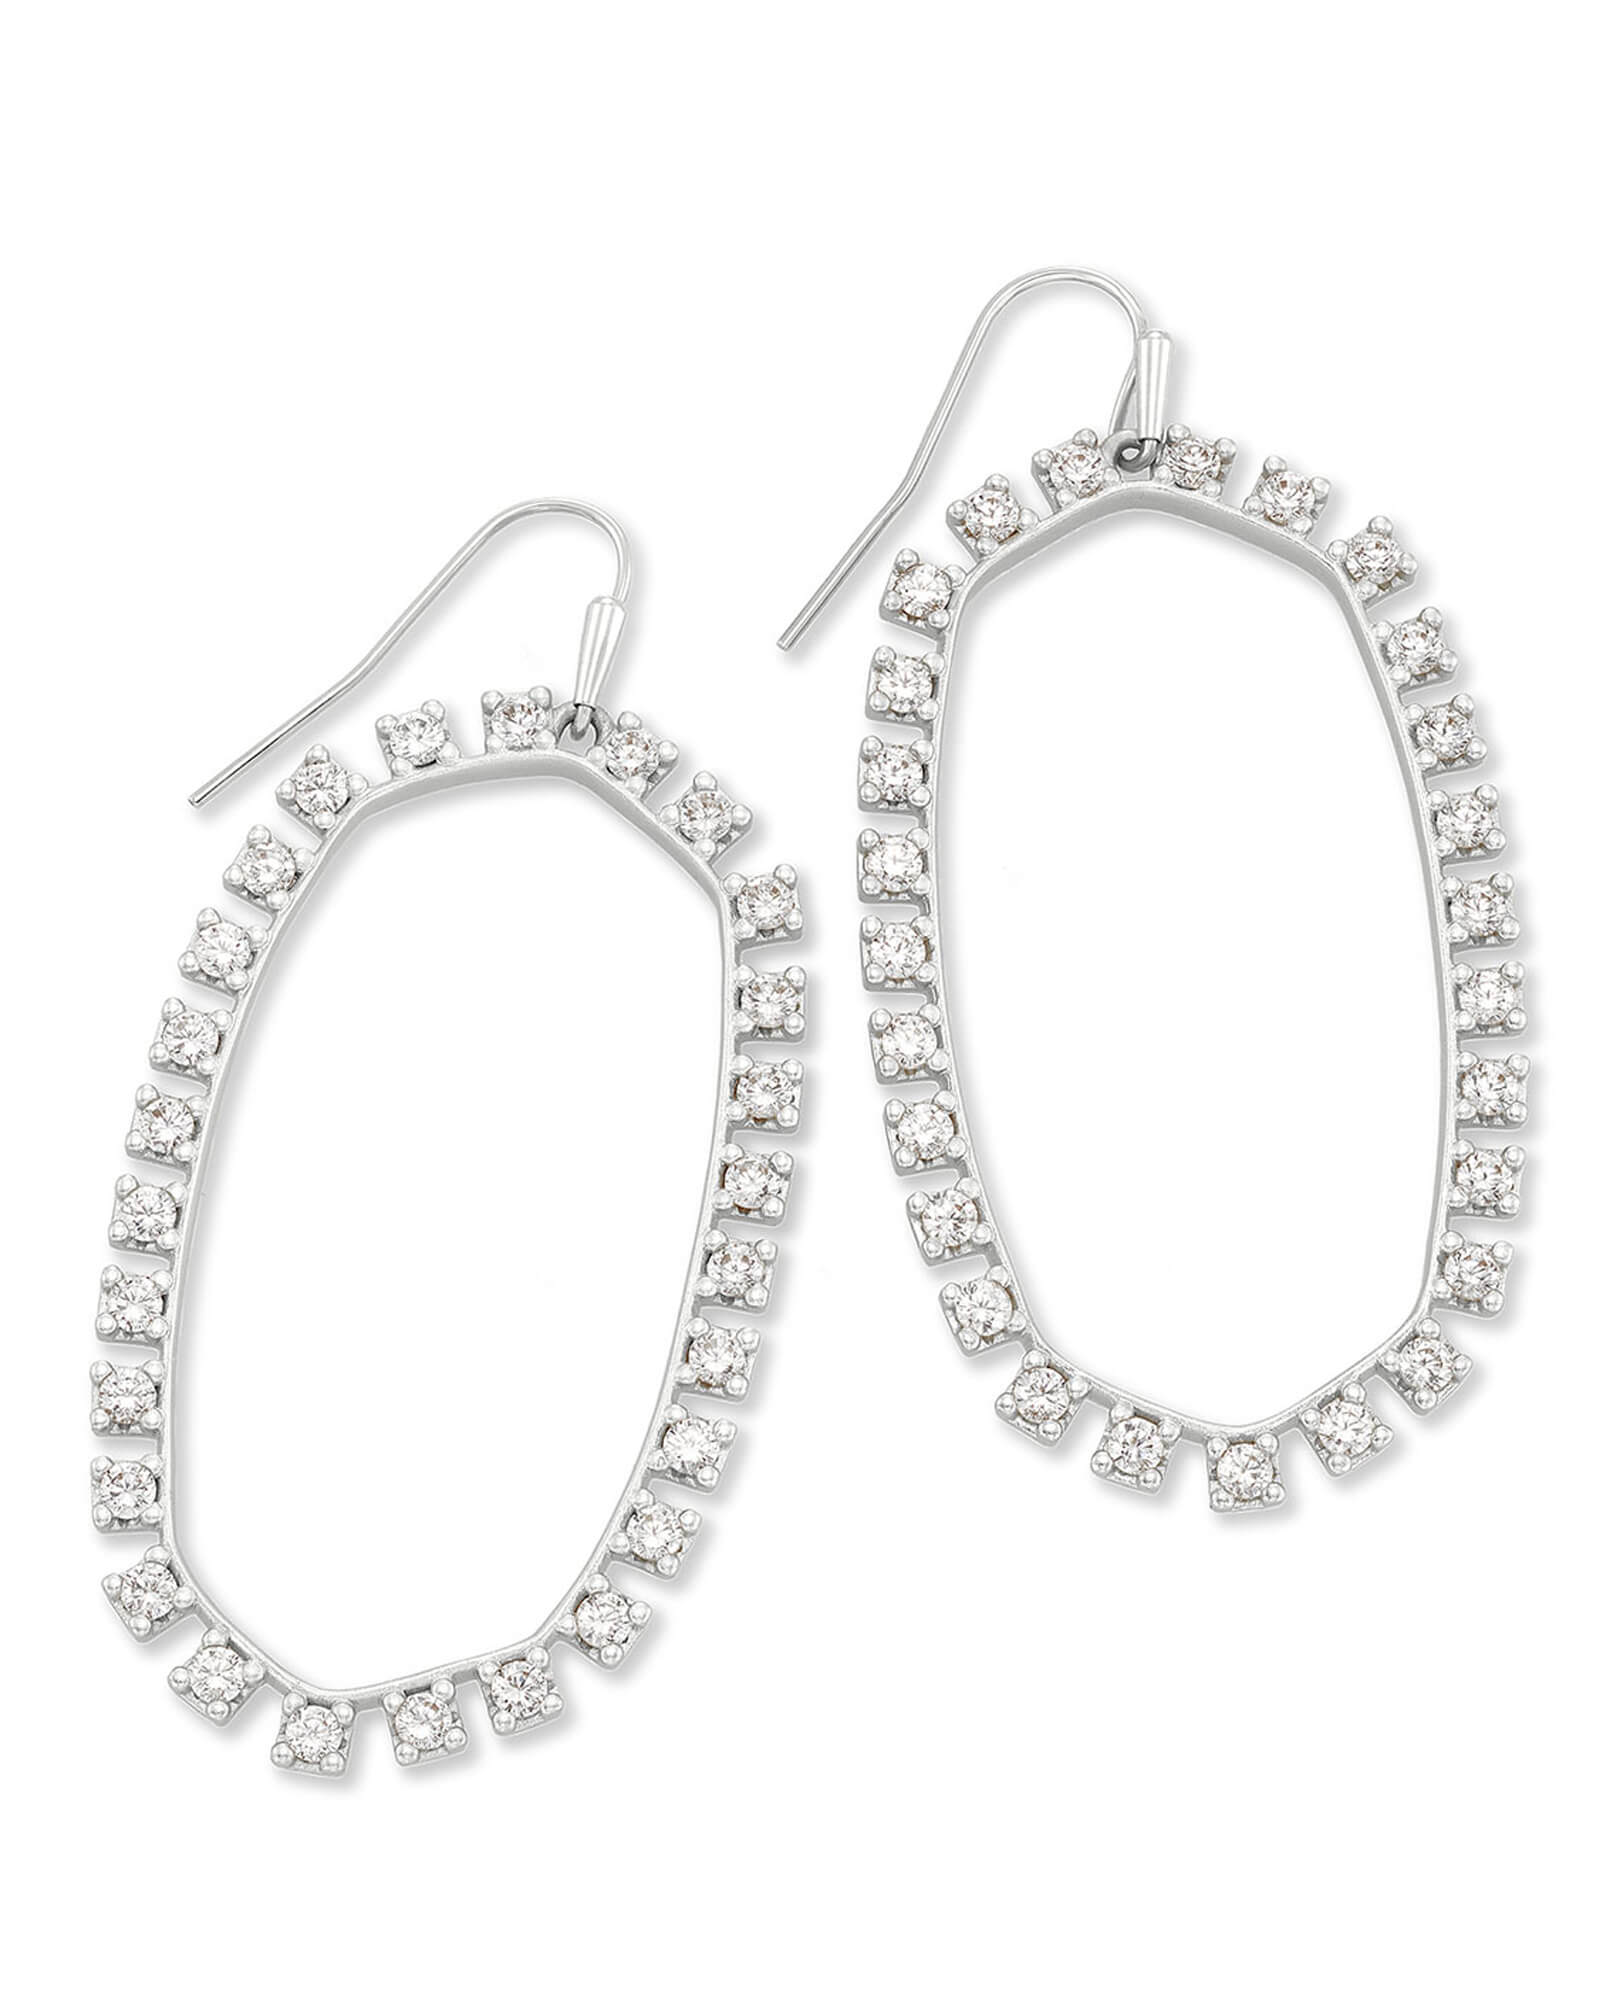 Danielle Open Frame Crystal Statement Earrings in Silver